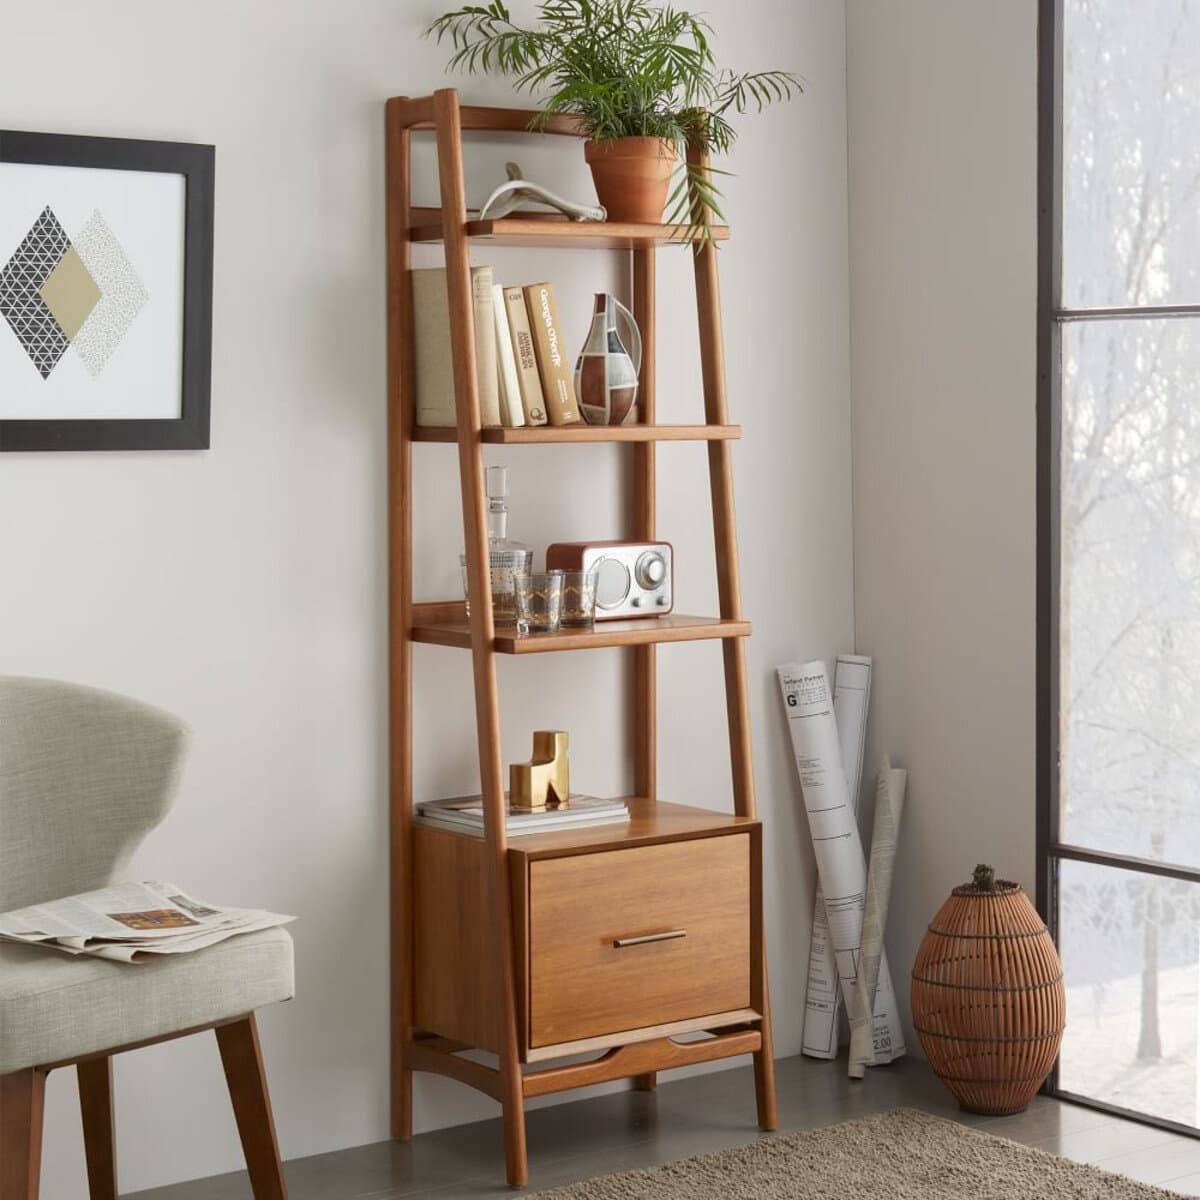 Mid-century Bookshelf  from West Elm